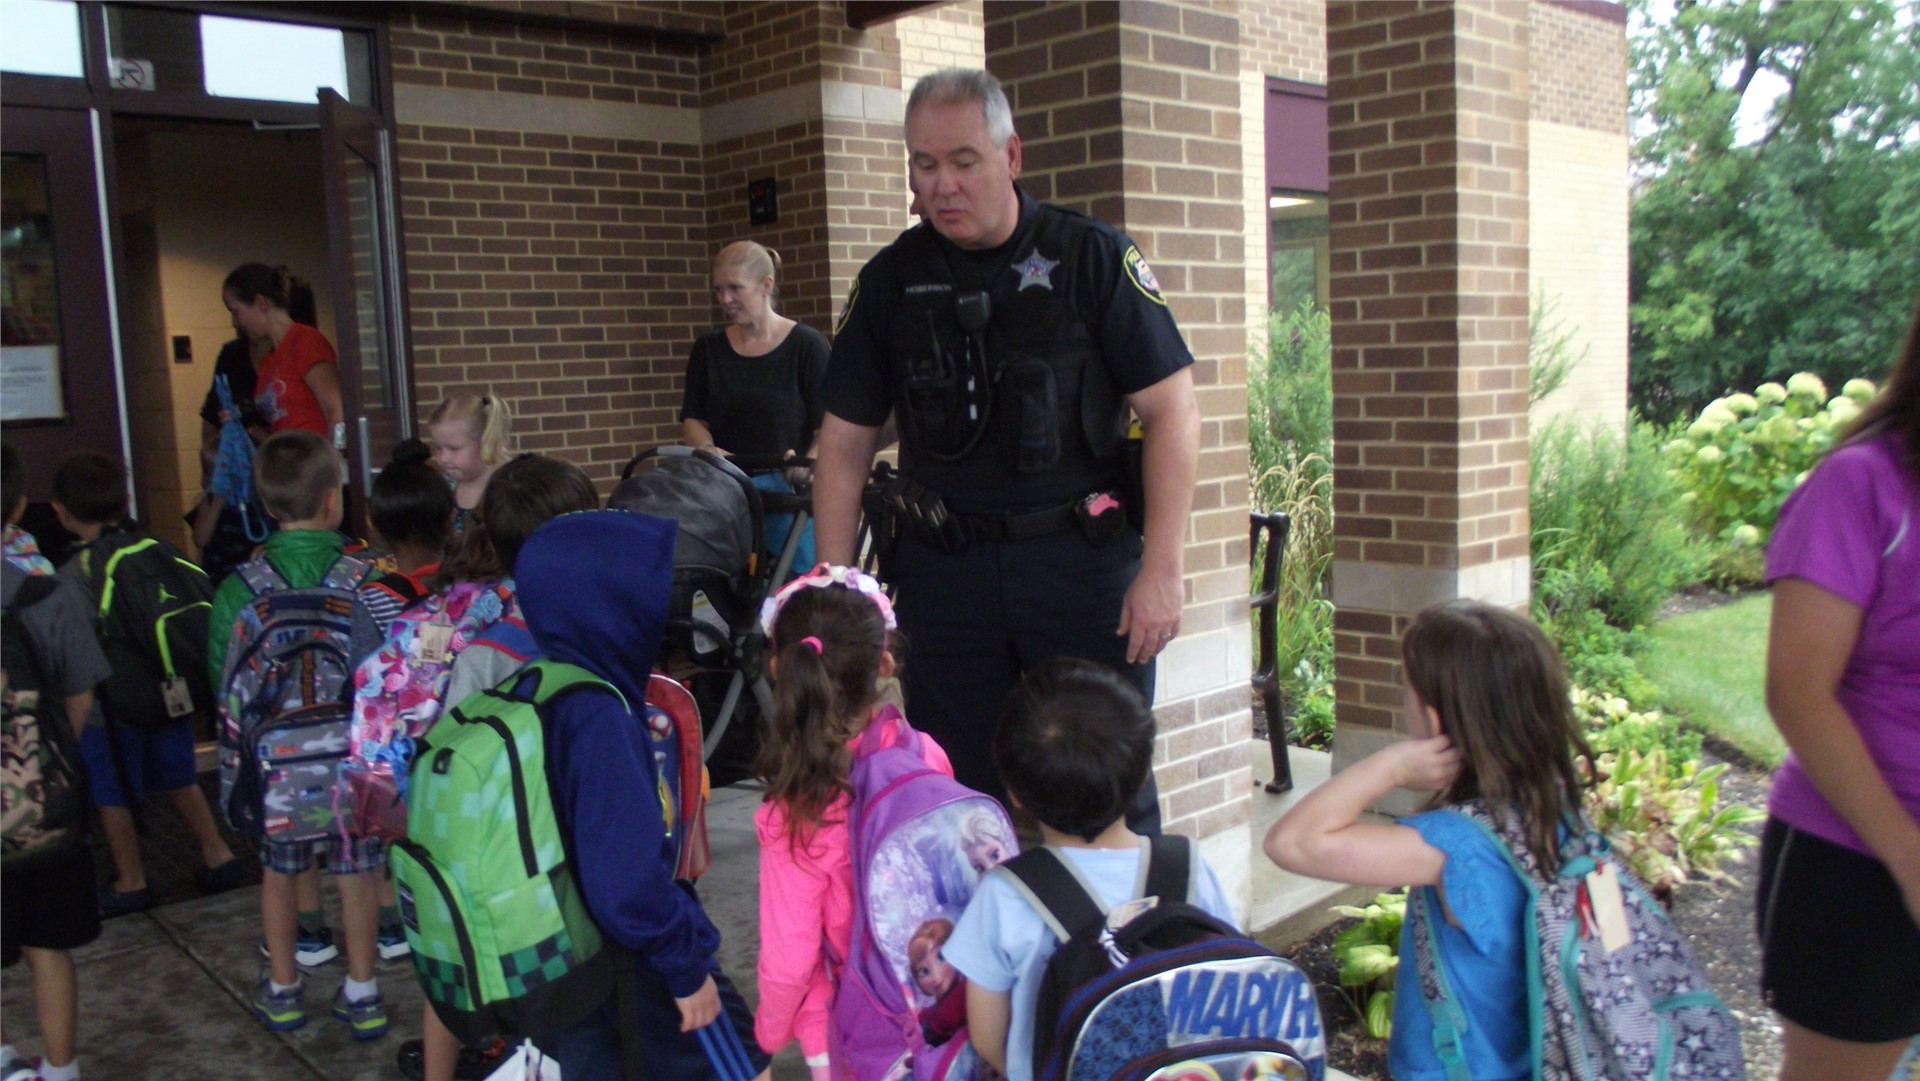 Police Officer Greets Children During Morning Arrival